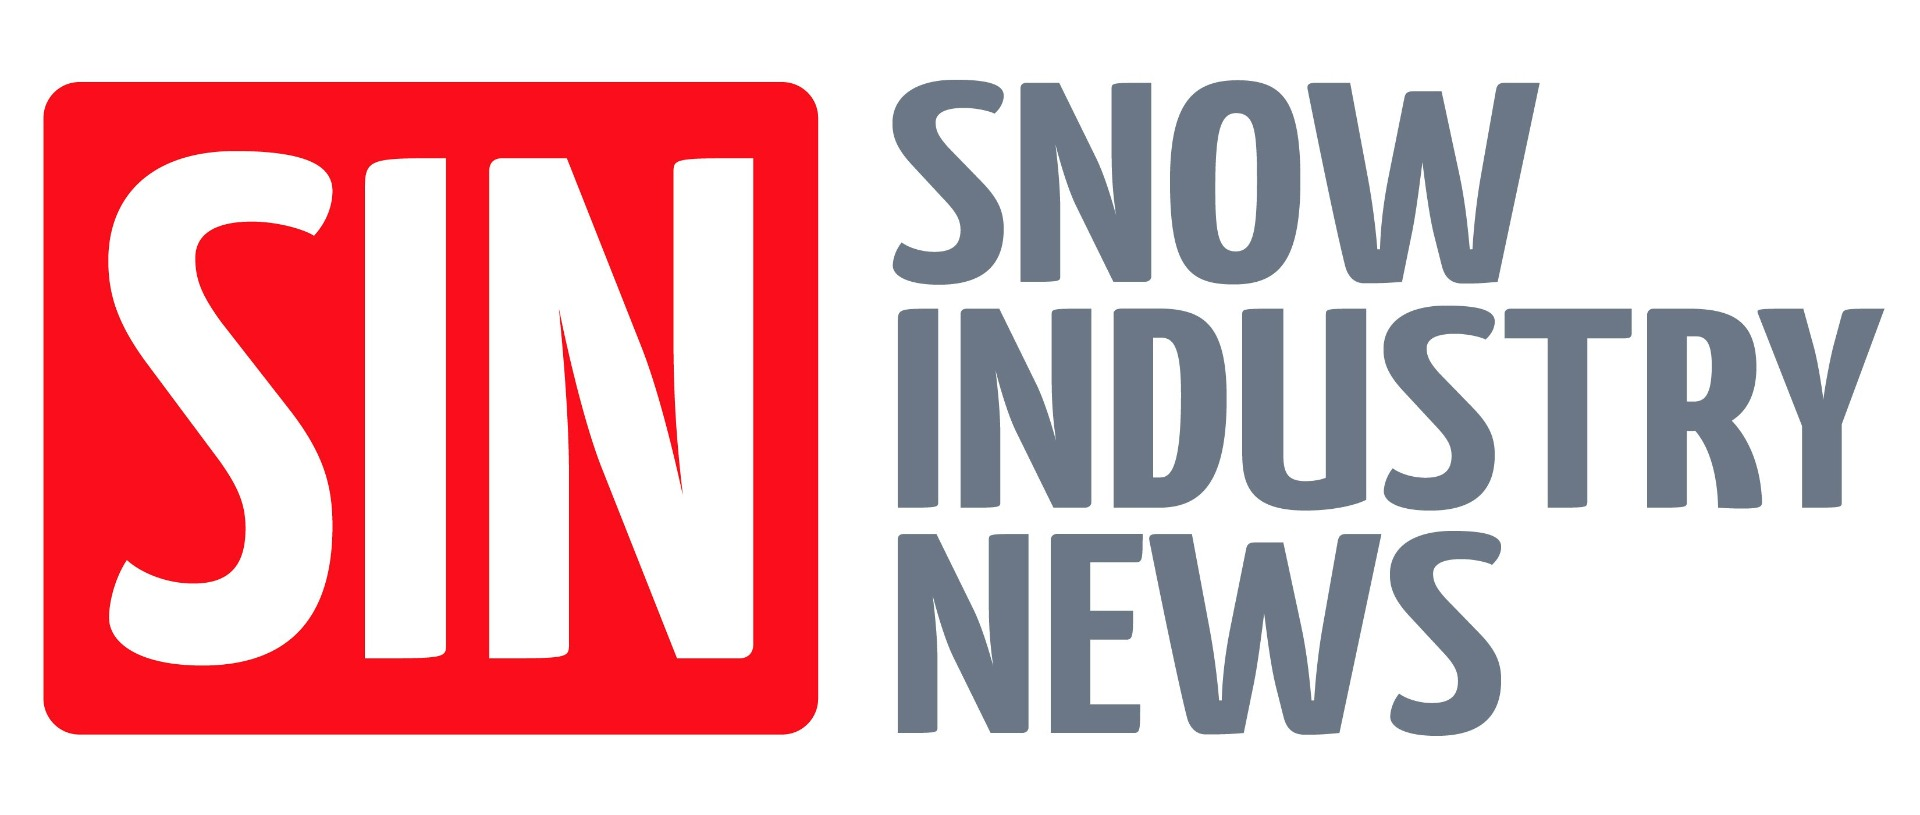 RS1 - Snow Industry News